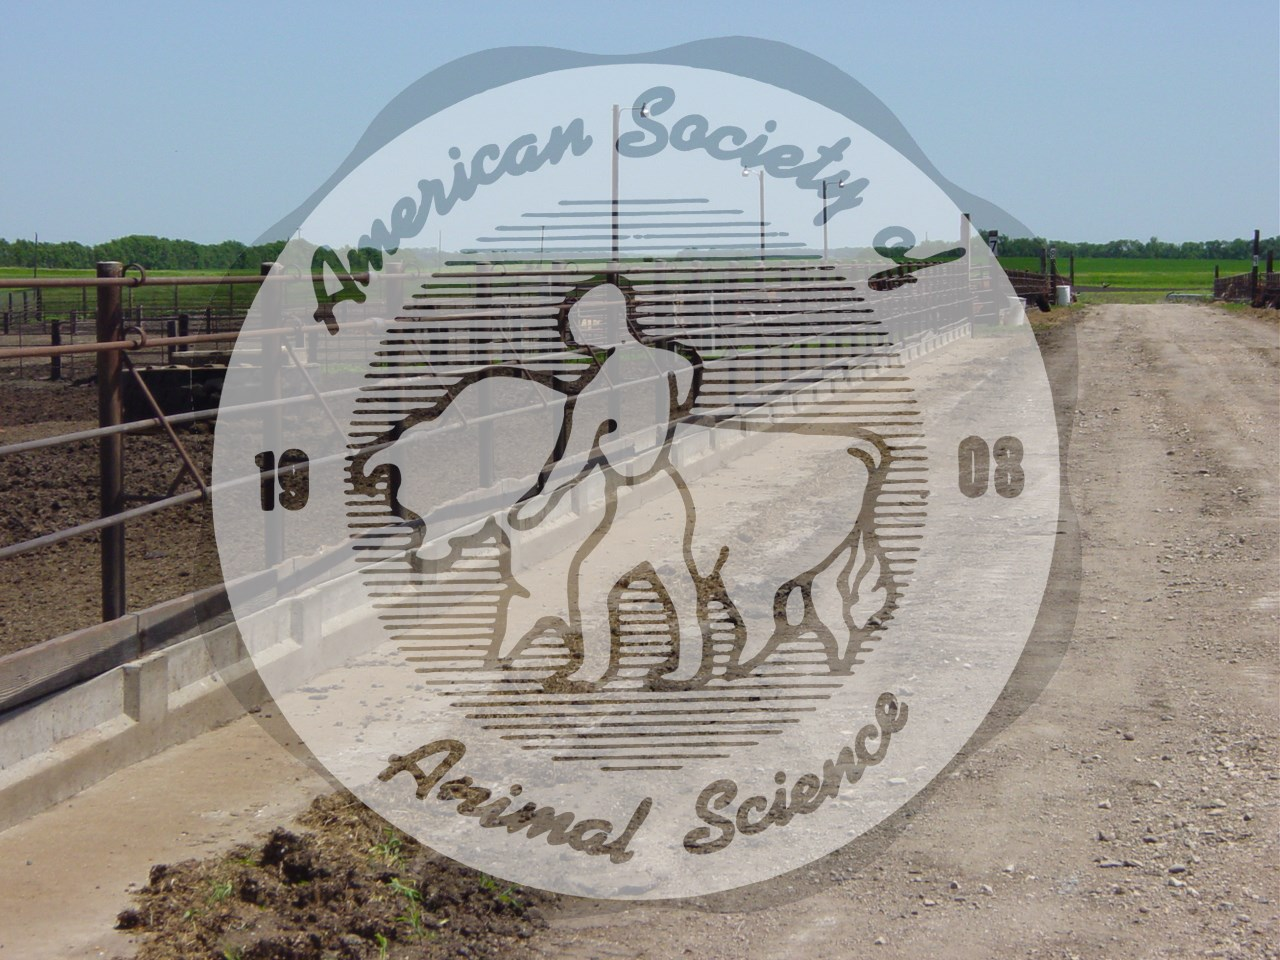 This image shows a feed pad at a feedlot in southeastern North Dakota.  The pad is constructed in a manner to allow feed to be placed directly on the pad rather than in a feed bunk.  Oilfield pipe and sucker rod is used to construct the fencing.